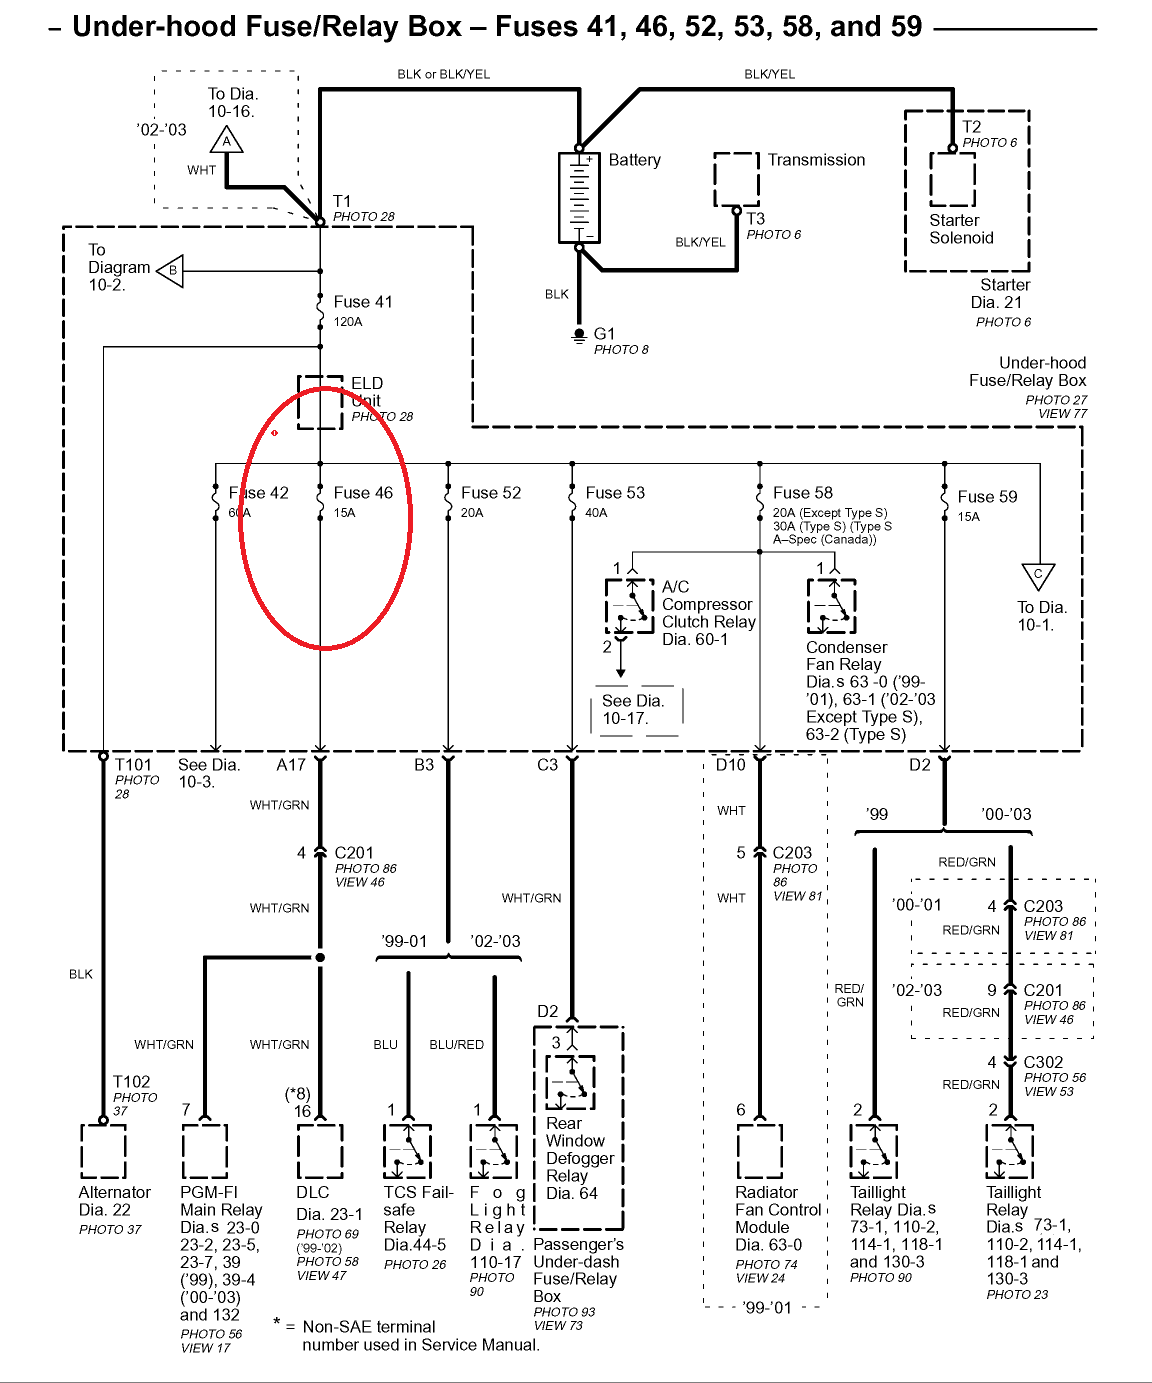 Wiring Diagram PDF: 2003 Acura Cl Wiring Diagram